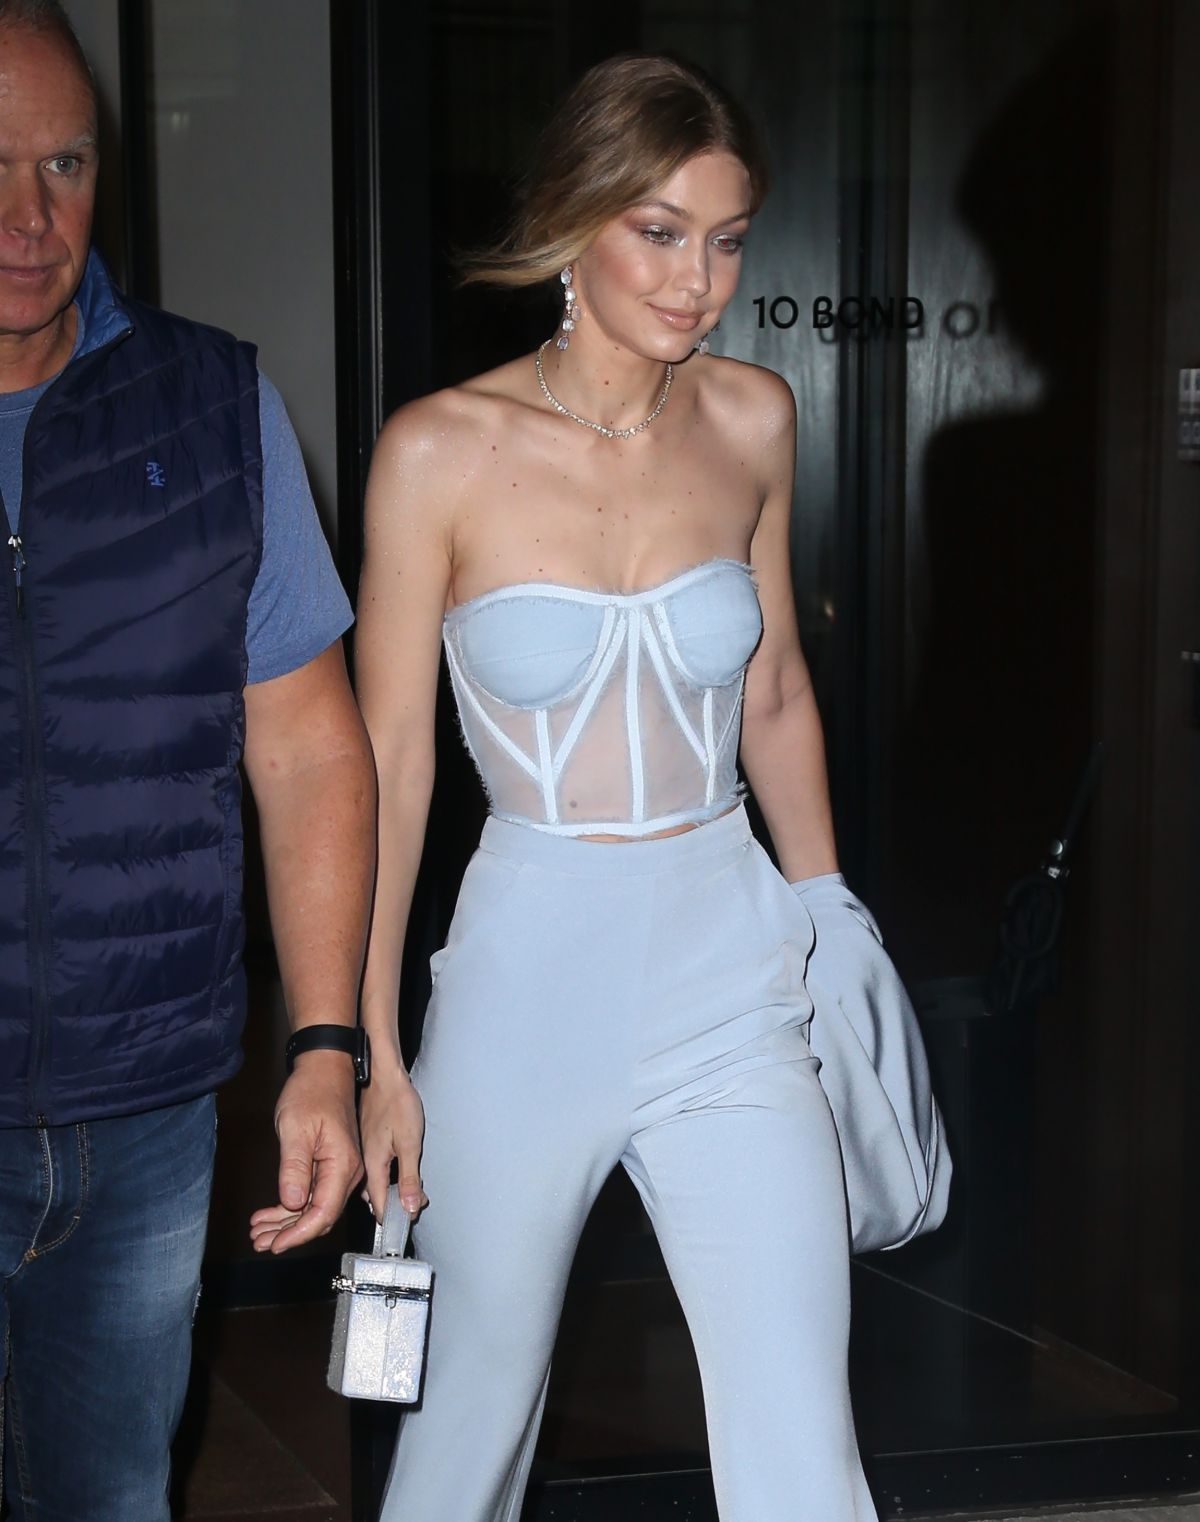 gigi-hadid-leaves-her-apartment-in-new-york-10-09-2017-11.jpg